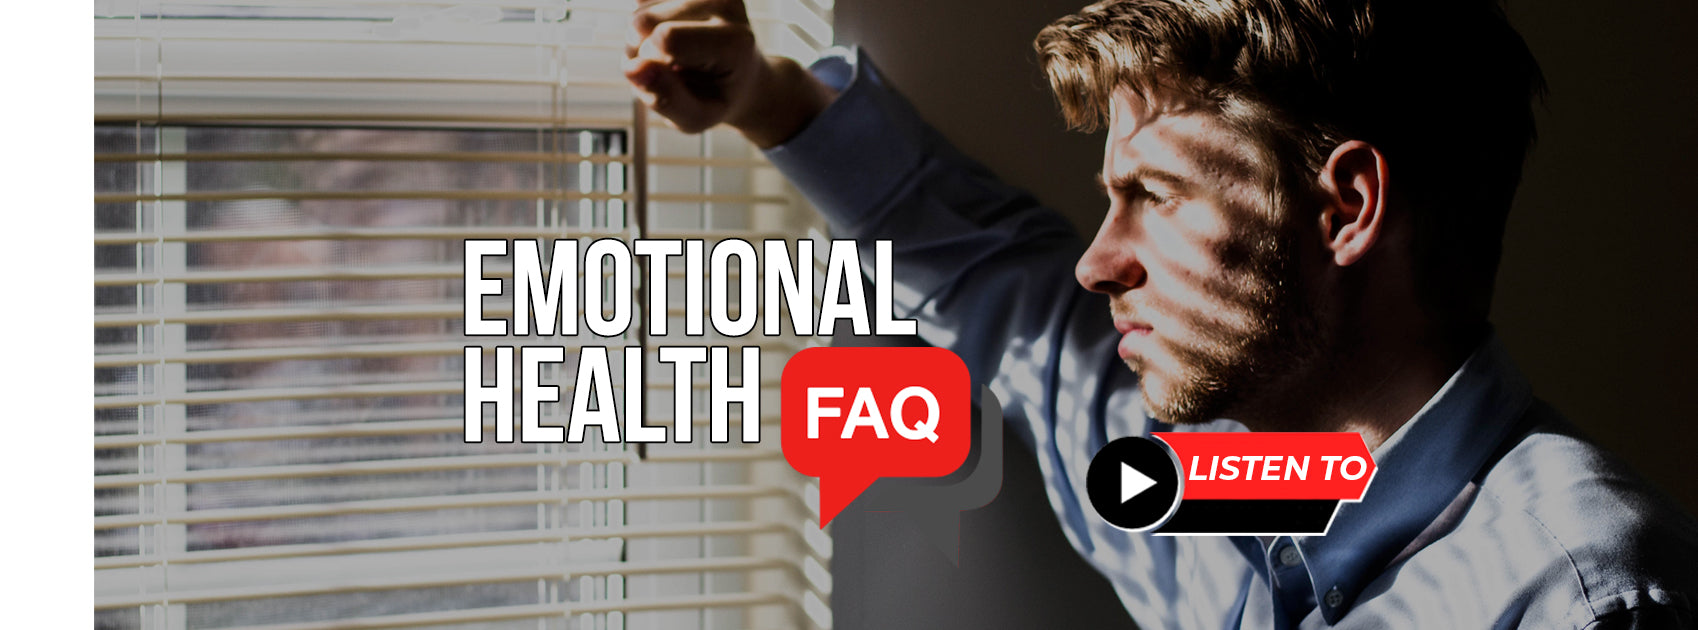 Emotional Health FAQ